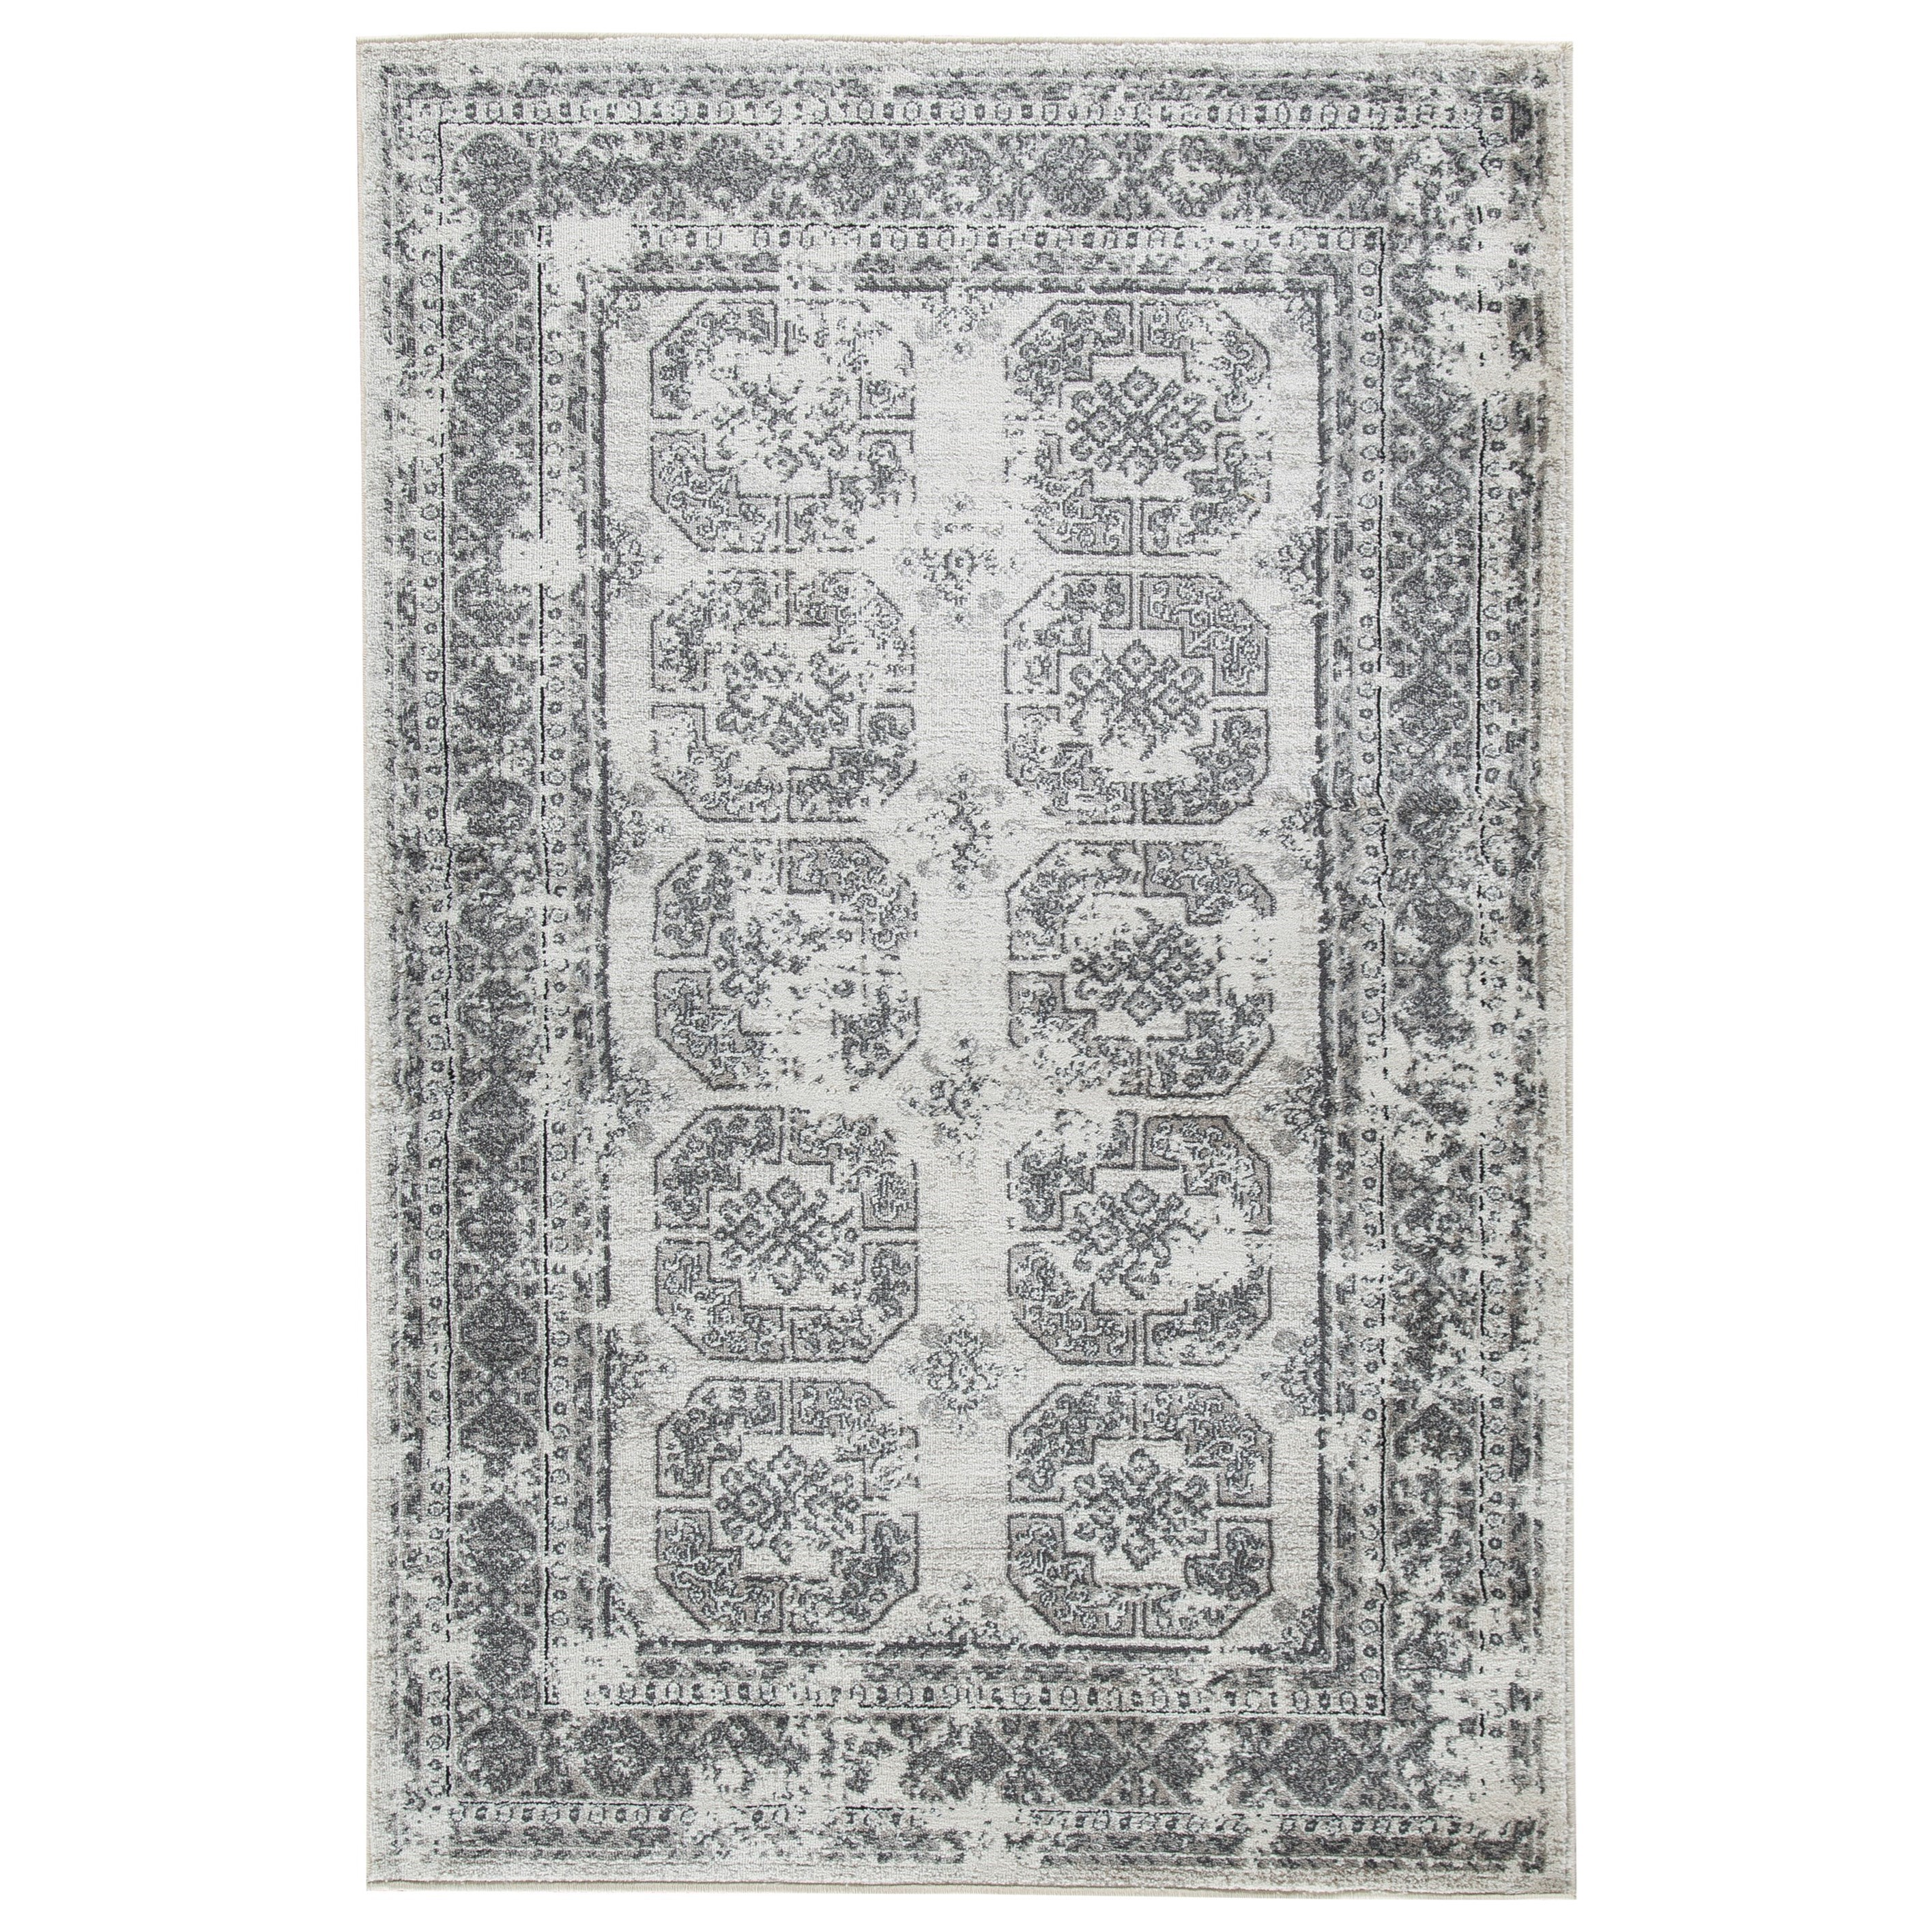 Transitional Area Rugs Jirou Gray/Taupe Medium Rug by Signature Design by Ashley at Zak's Warehouse Clearance Center